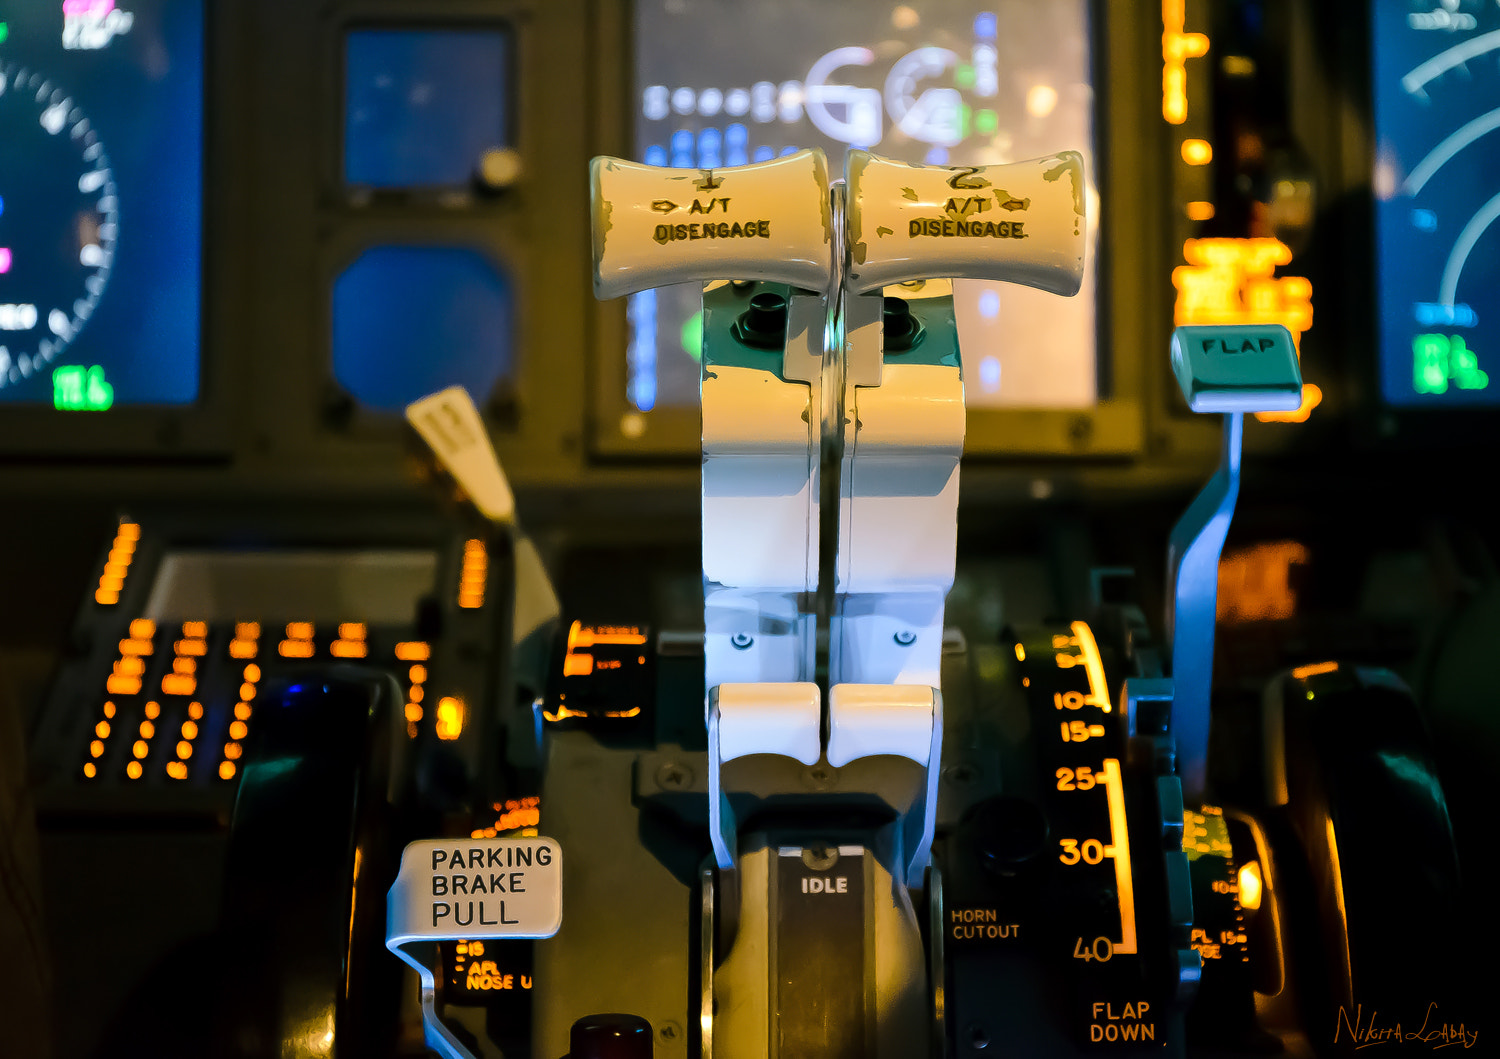 Photograph In the cockpit of the Boeing 737 by Nikita Labai on 500px